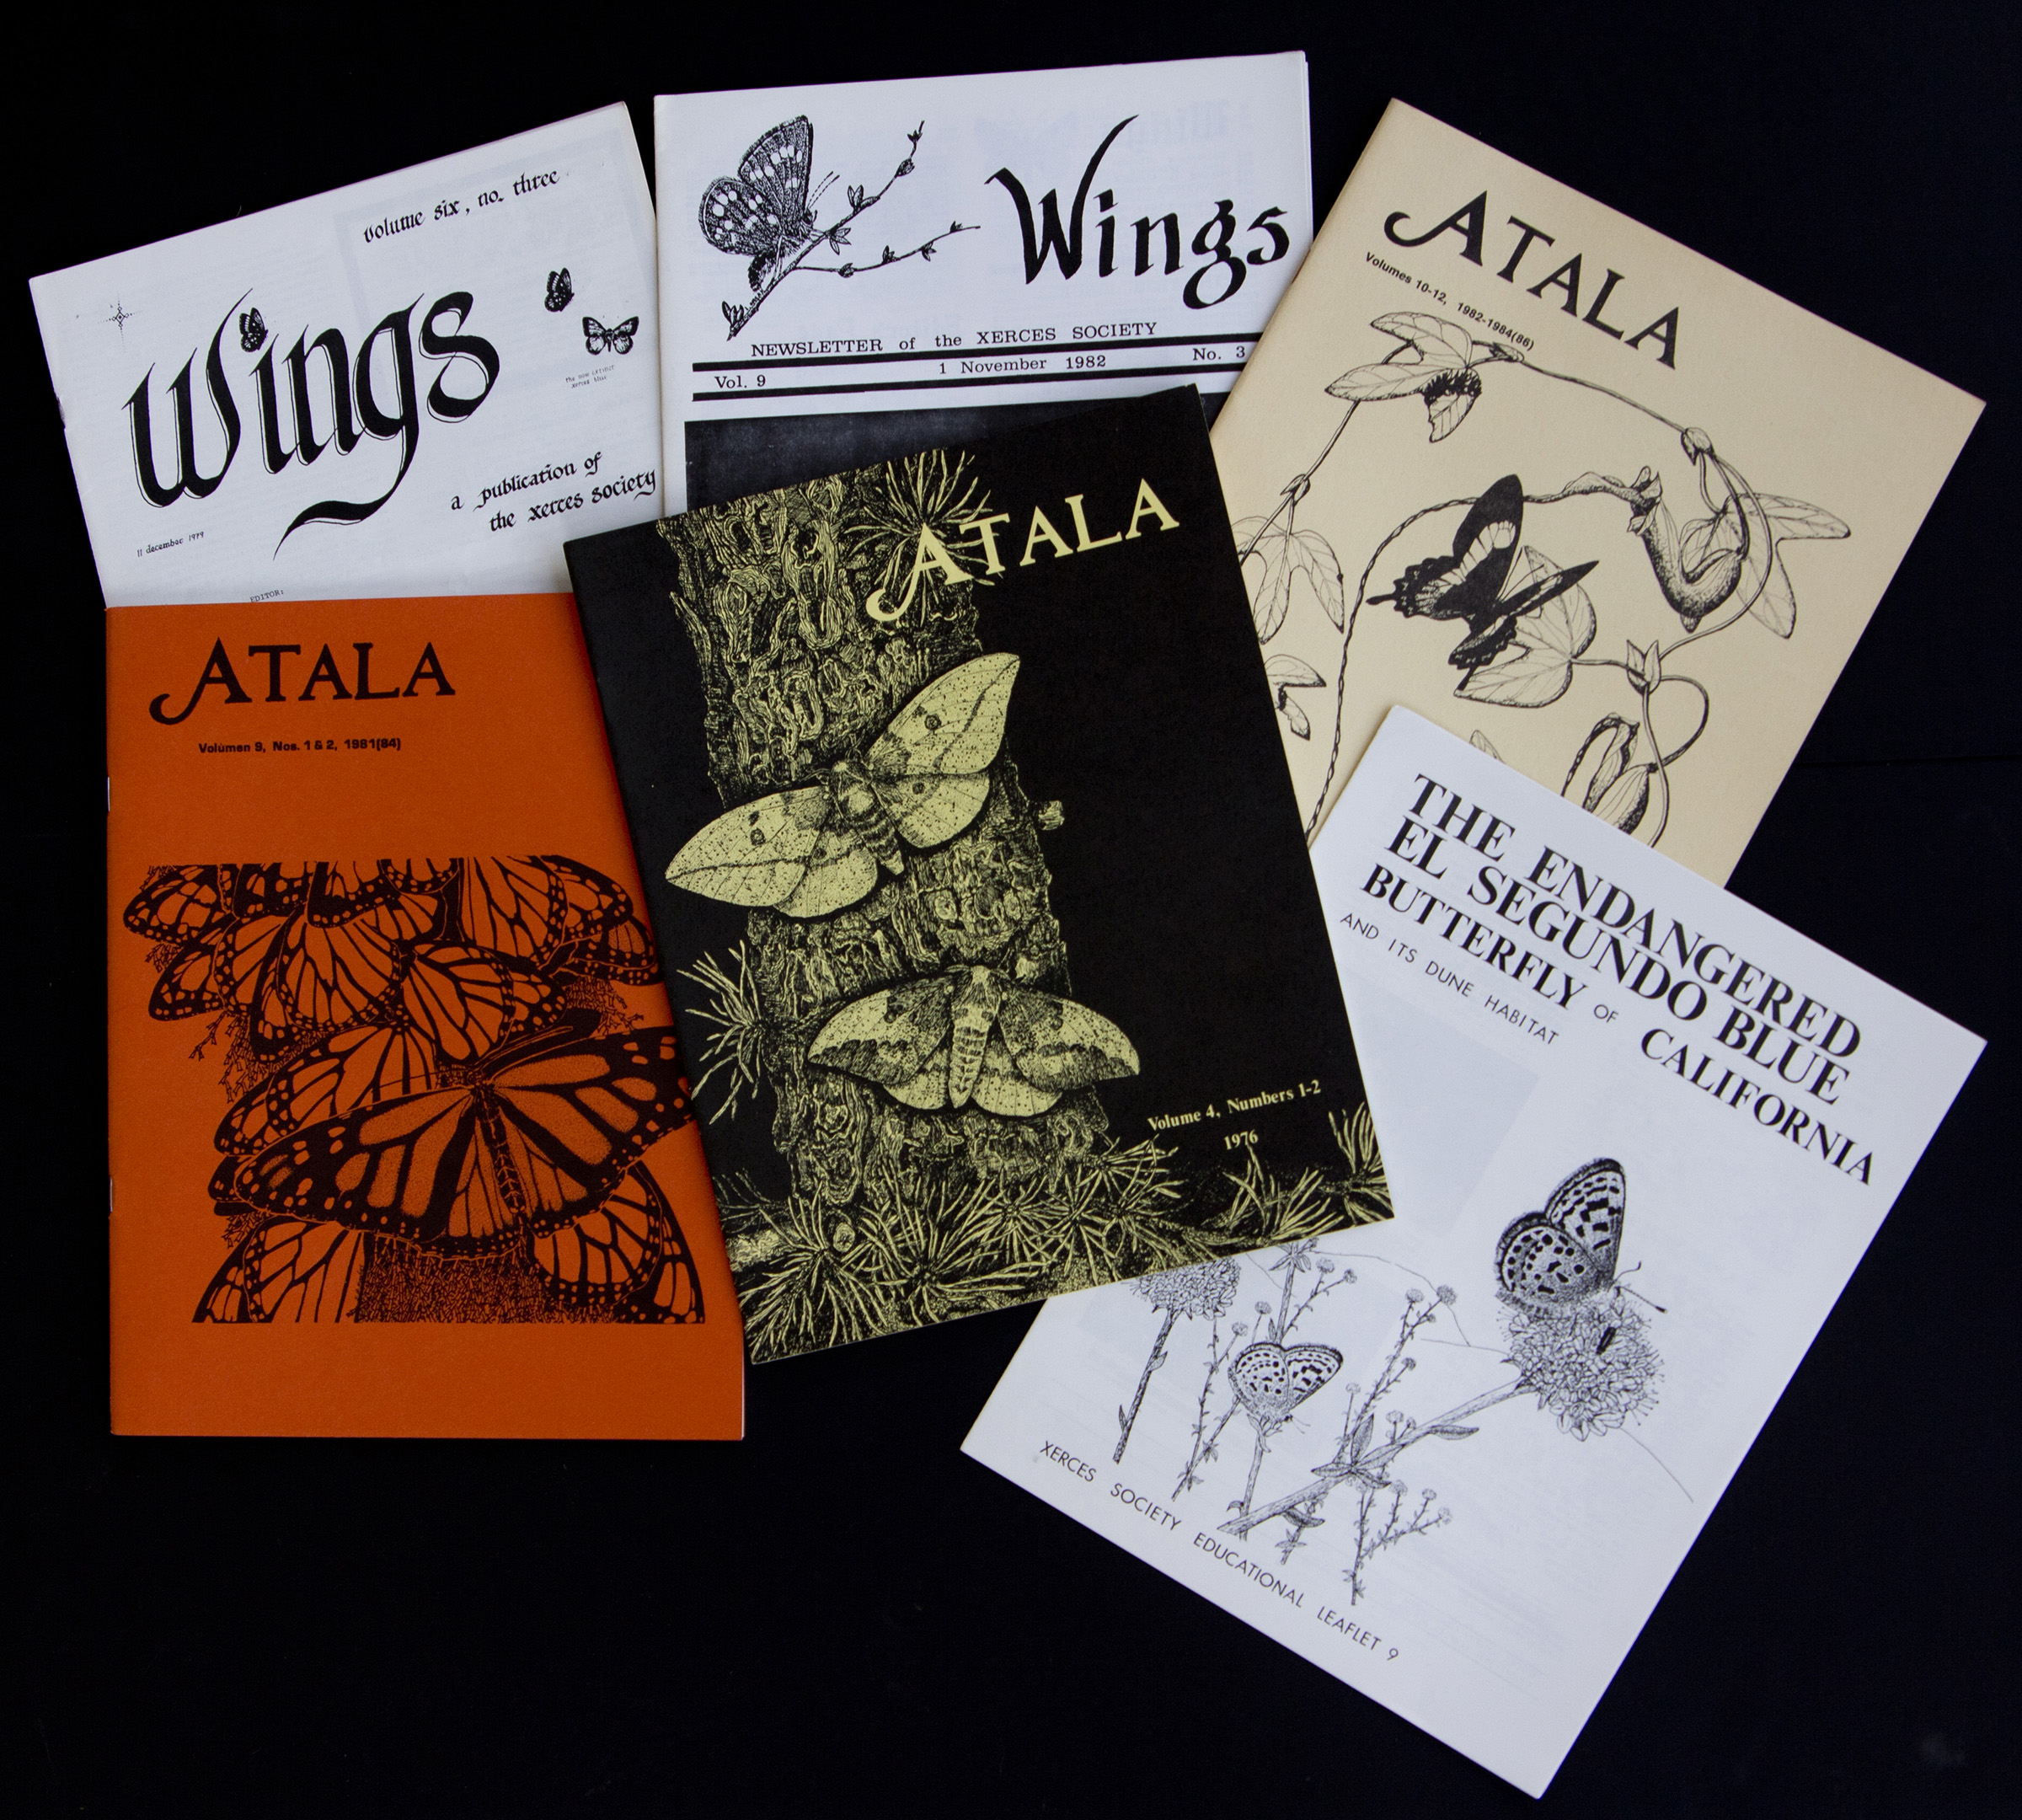 A selection of old publications: Wings newsletter is printed in black-and-white, with the covers of Atala journal are orange, black, and pale yellow.